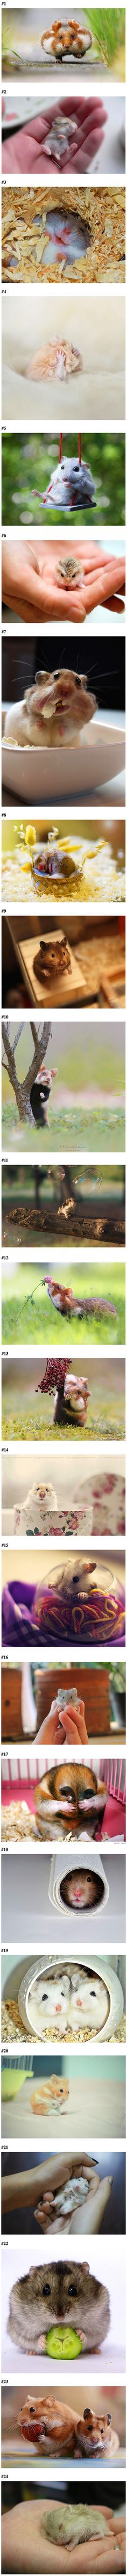 Photographers capture 20 images that show why the internet needs more hamsters.